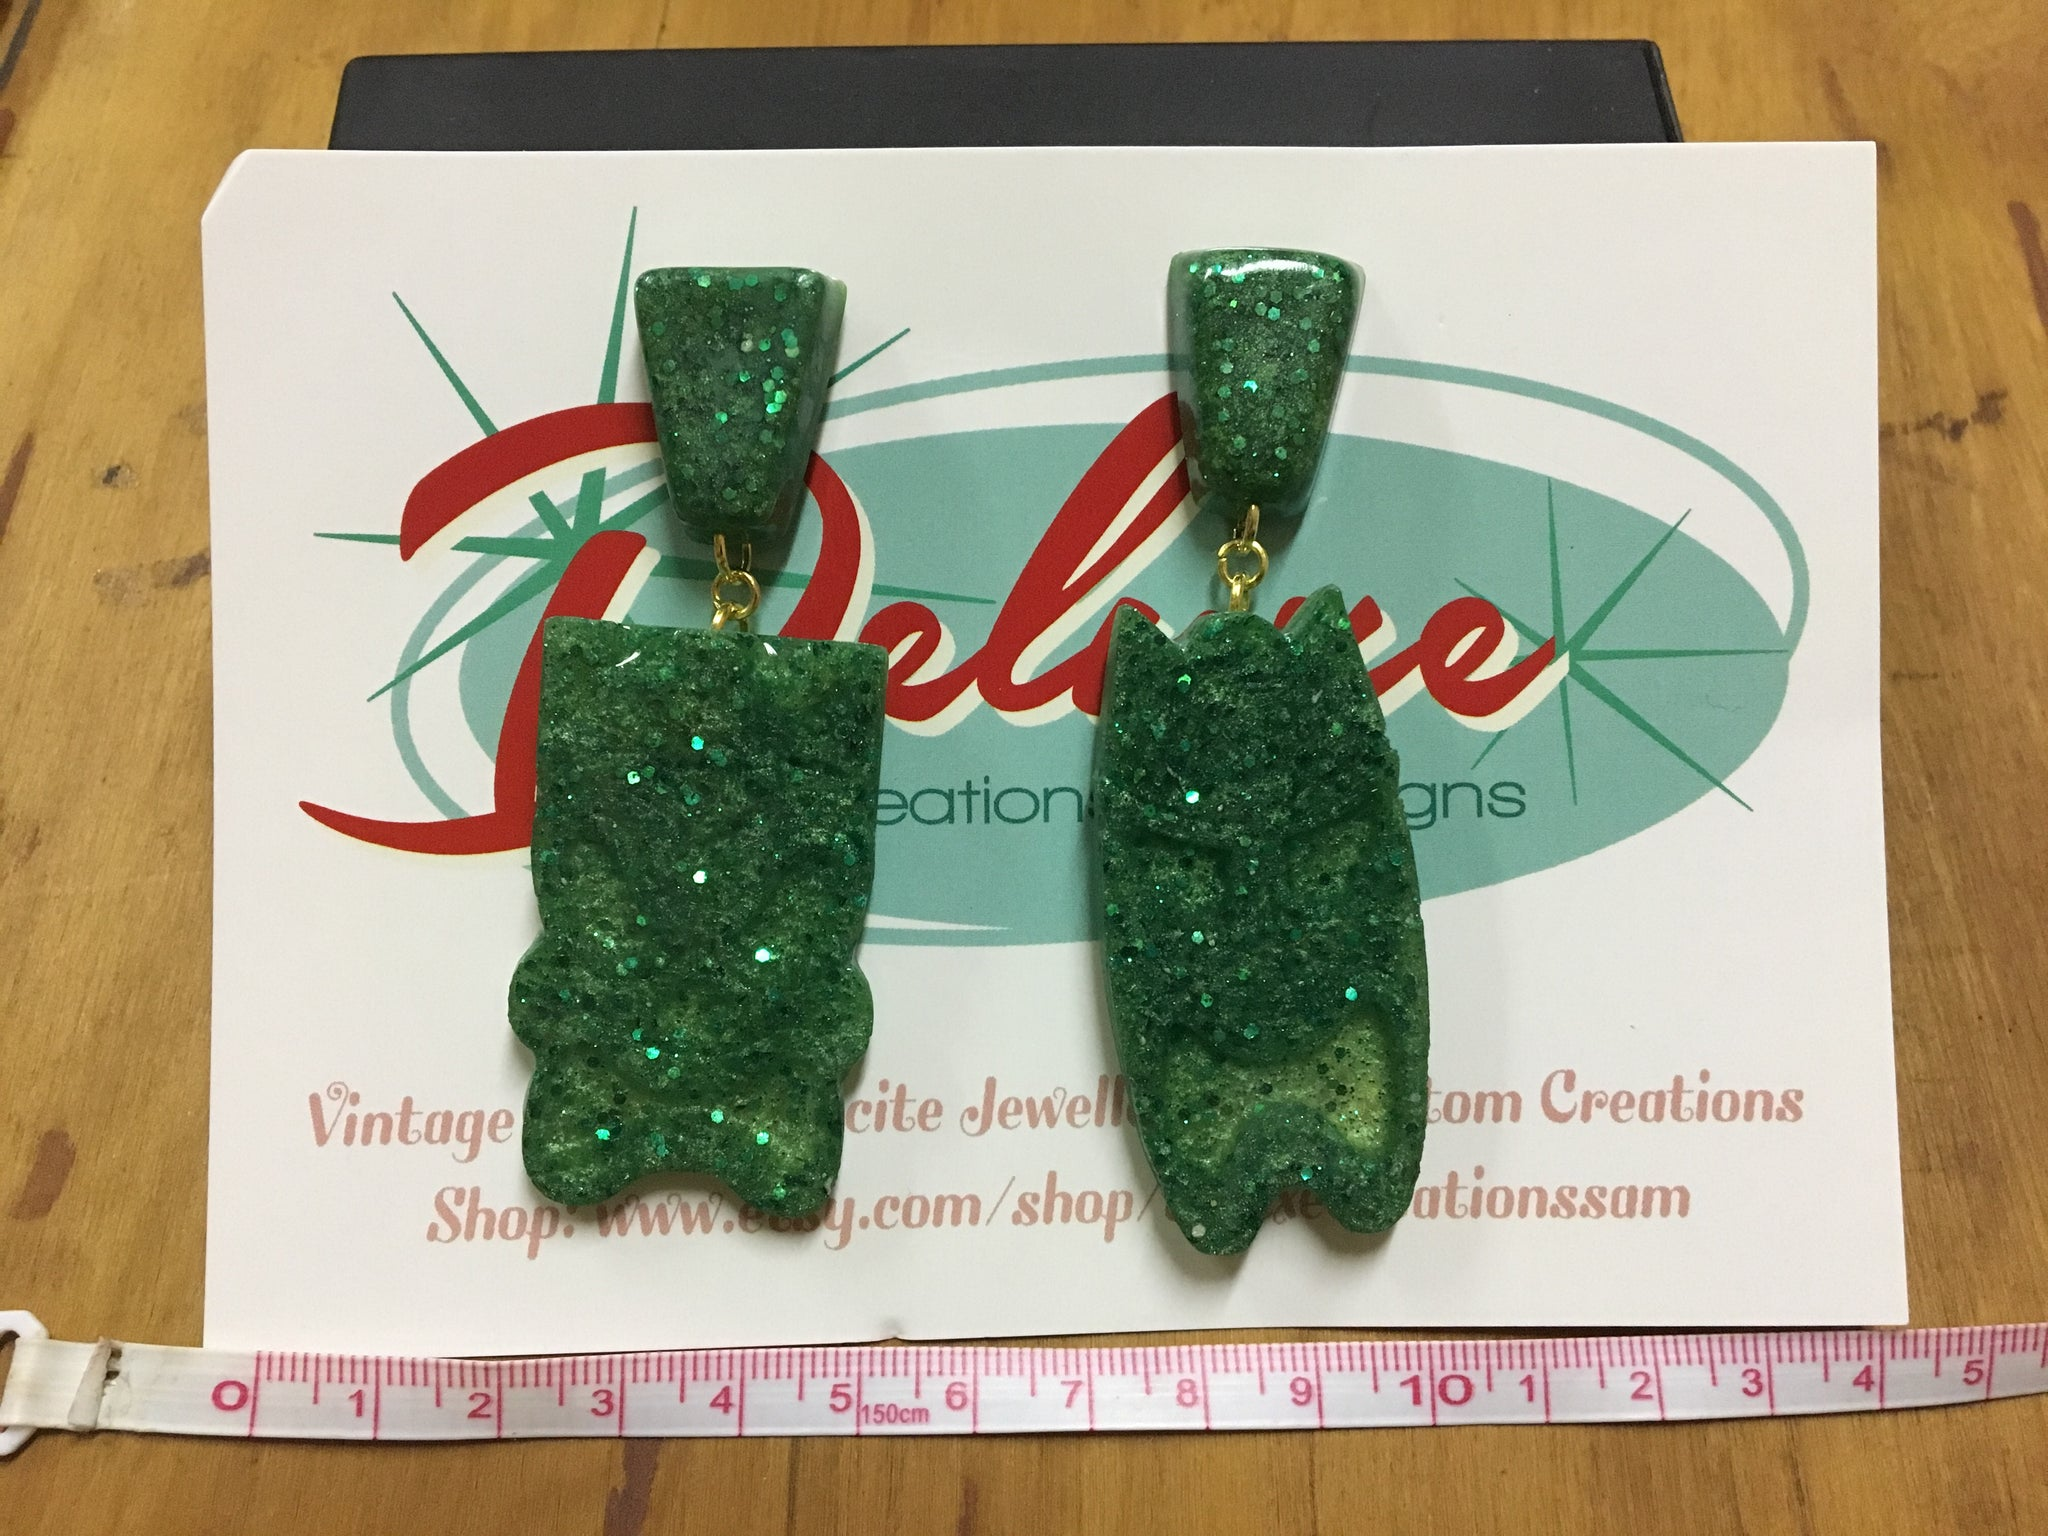 Deluxe creations large green tiki head earrings